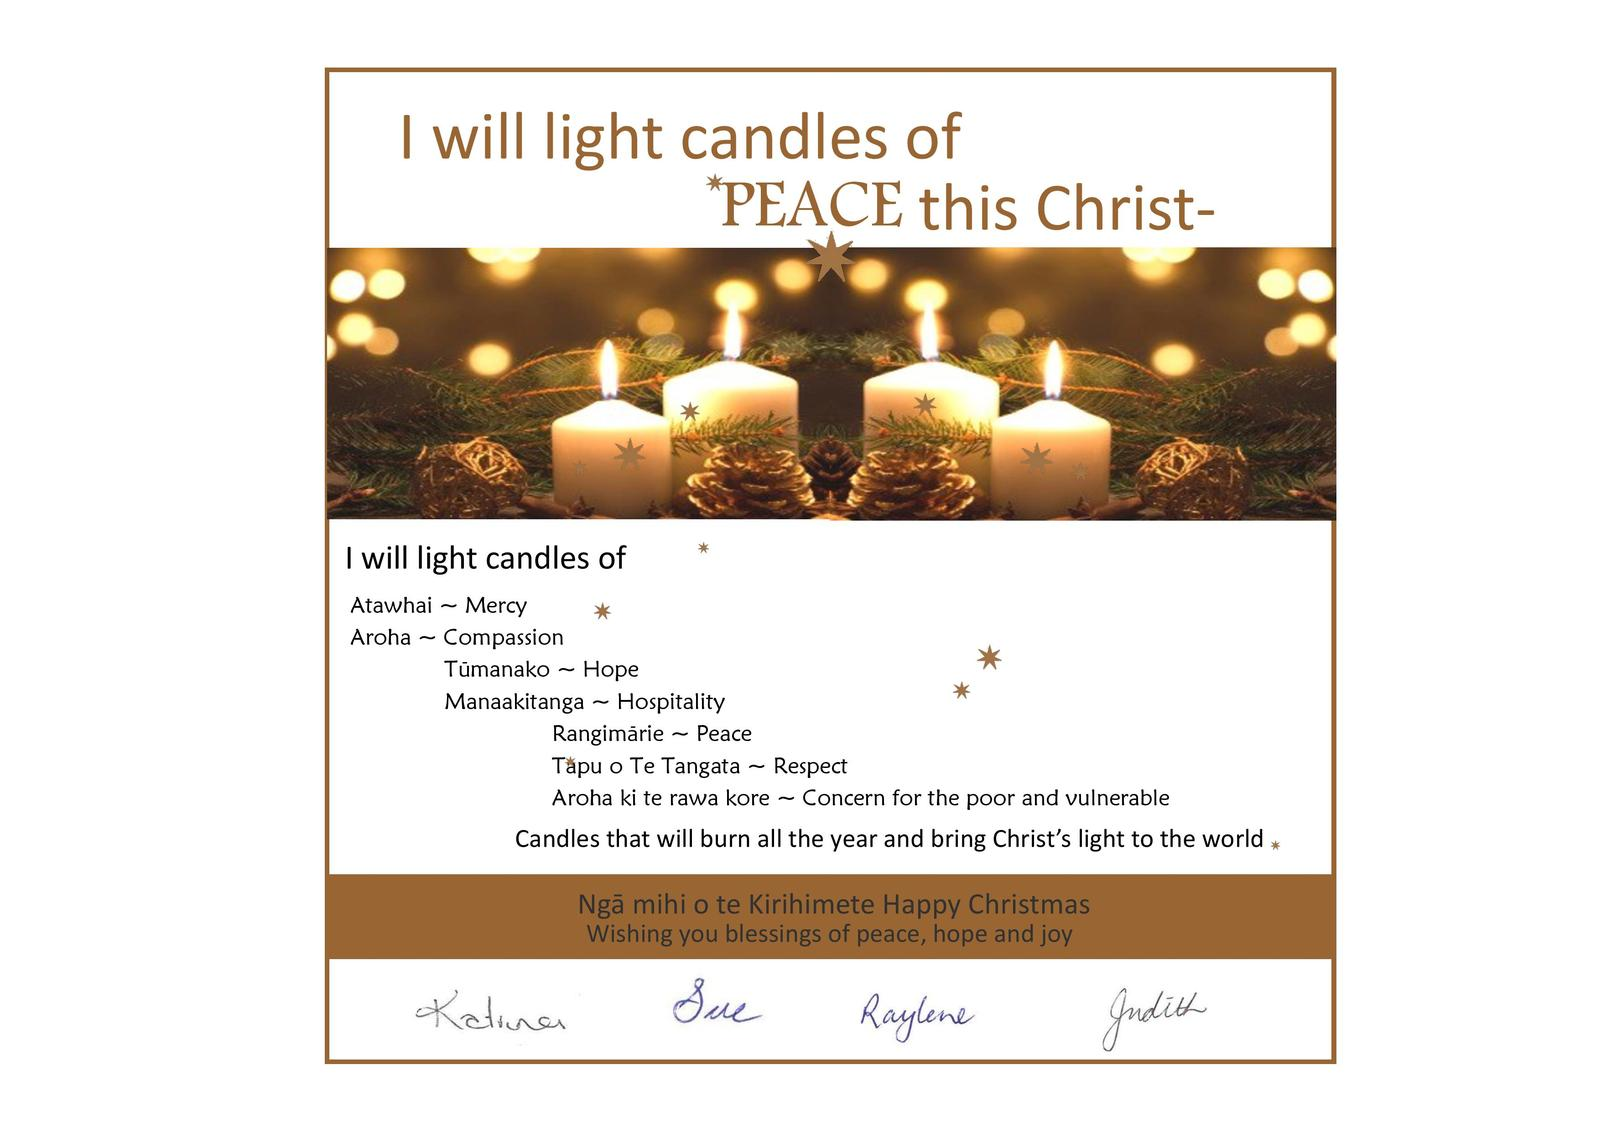 More Christmas Greetings From The Mercy World Mercy World